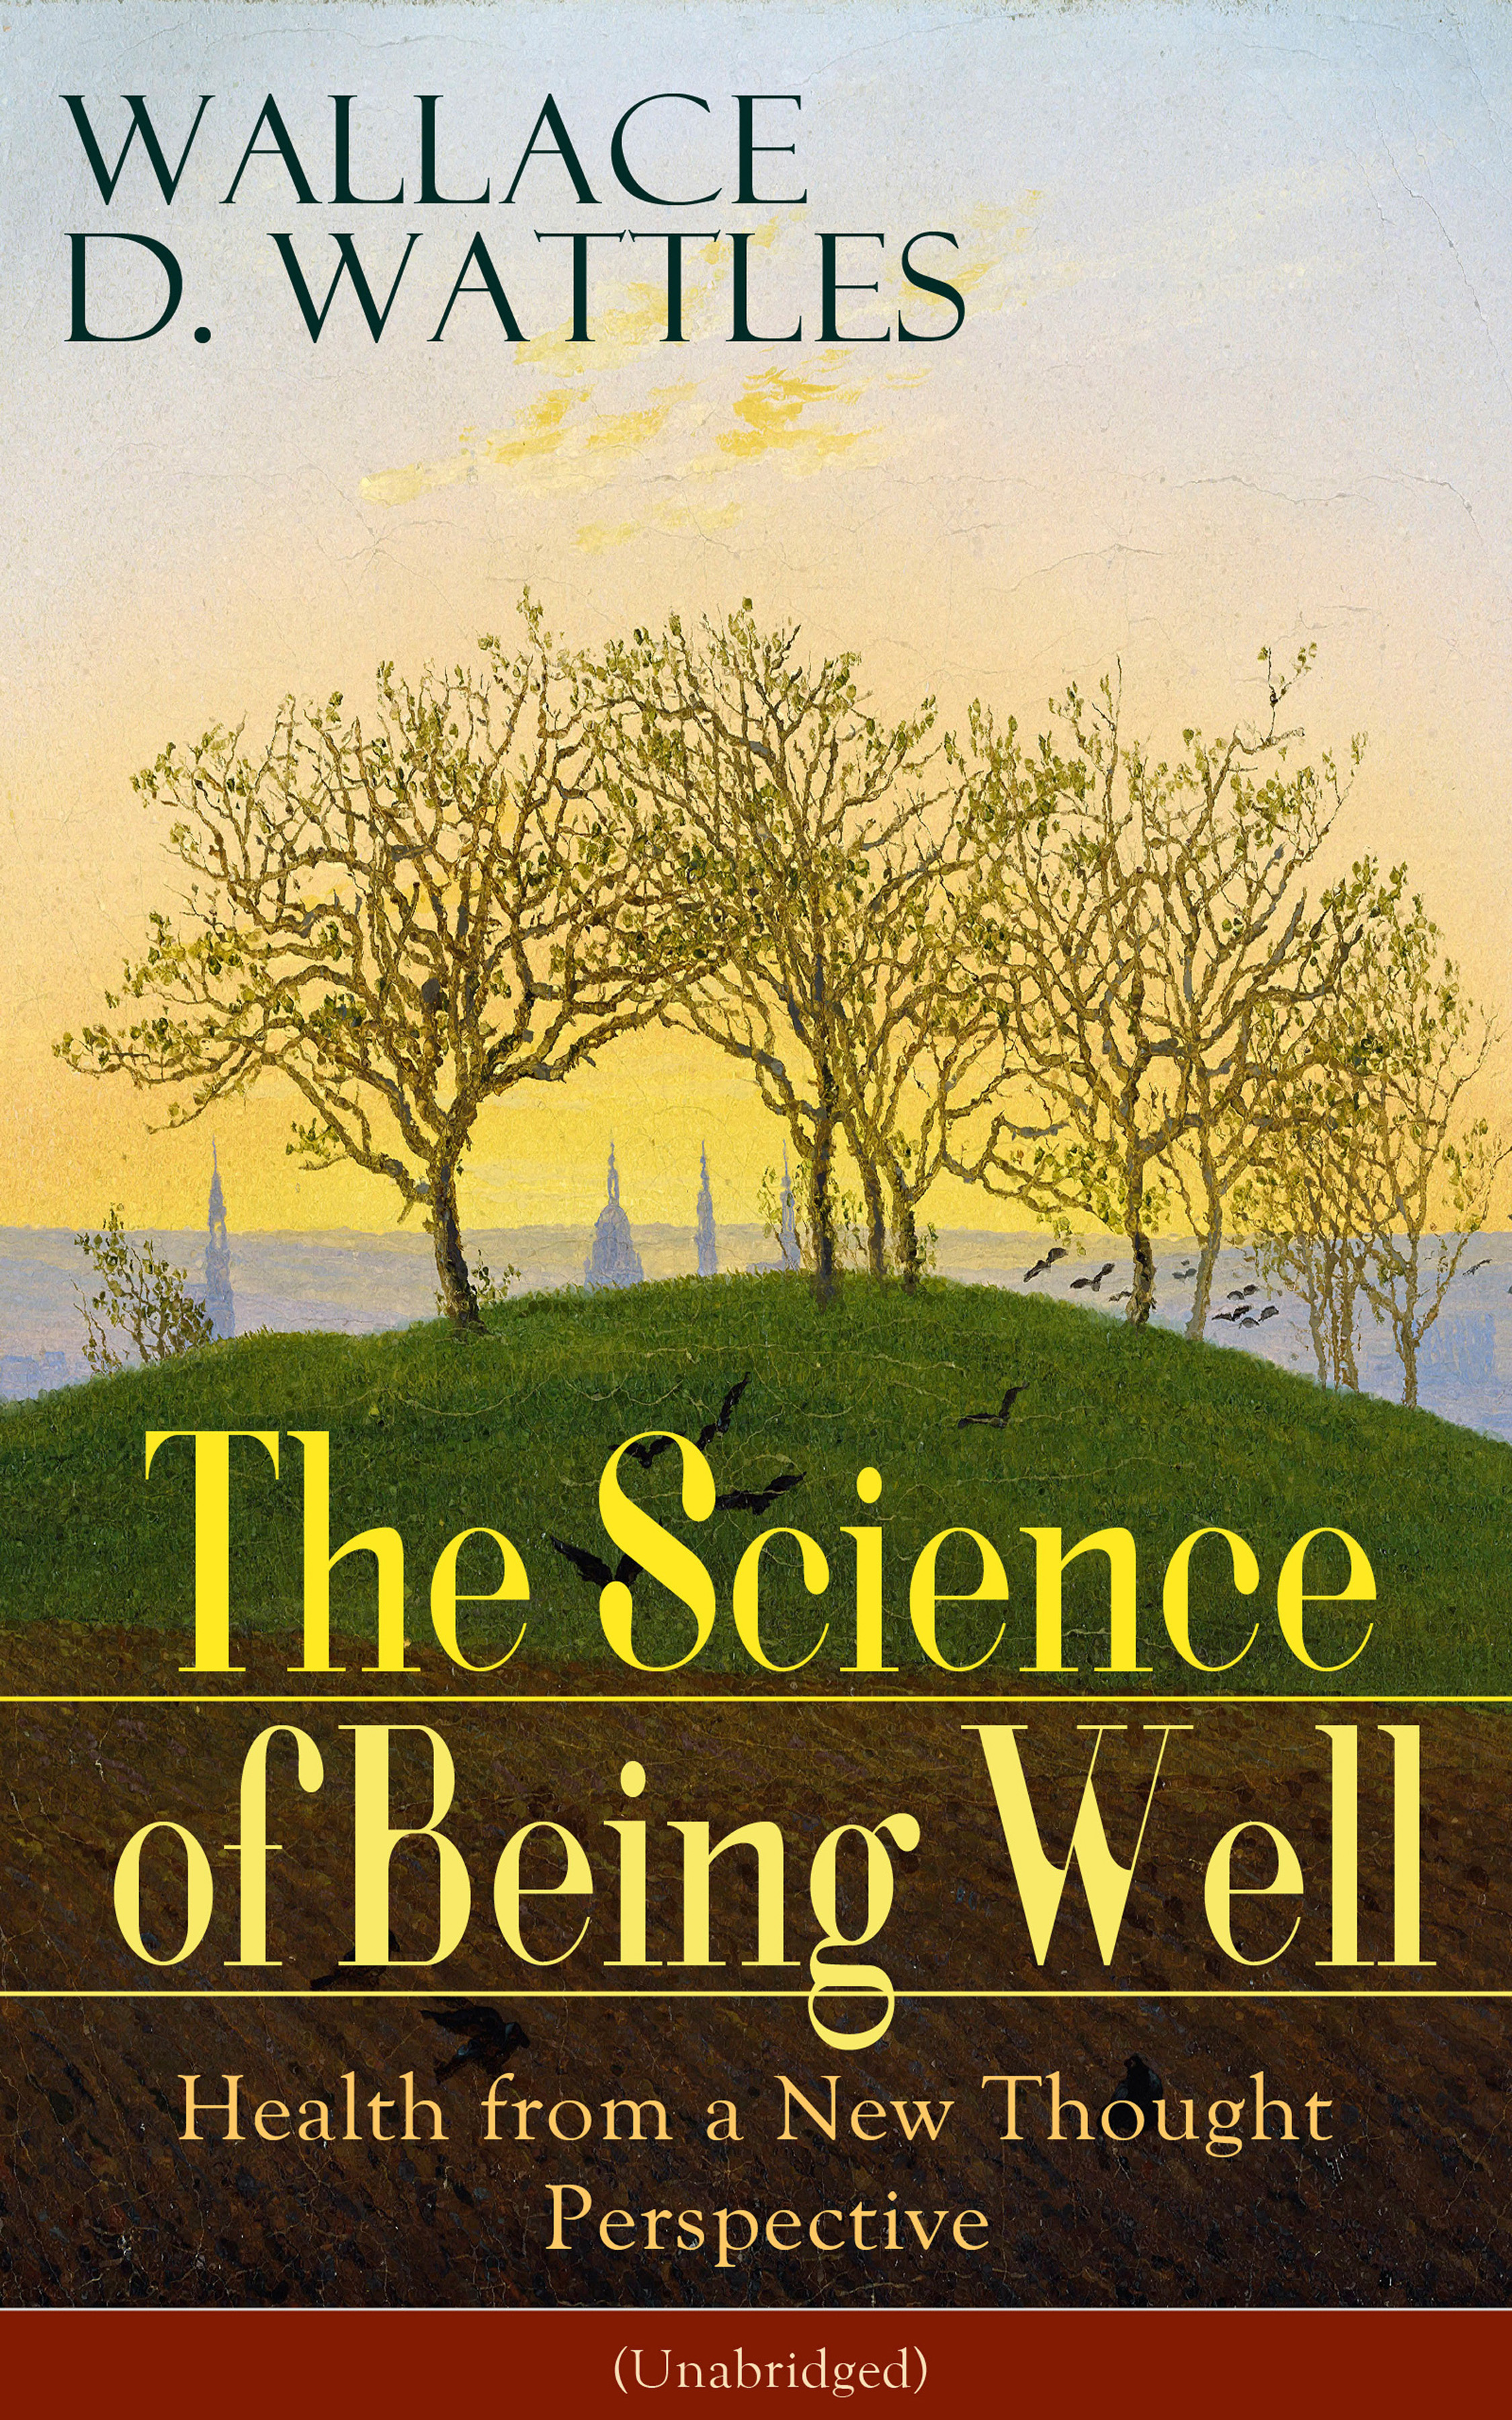 Wallace D. Wattles The Science of Being Well: Health from a New Thought Perspective (Unabridged)